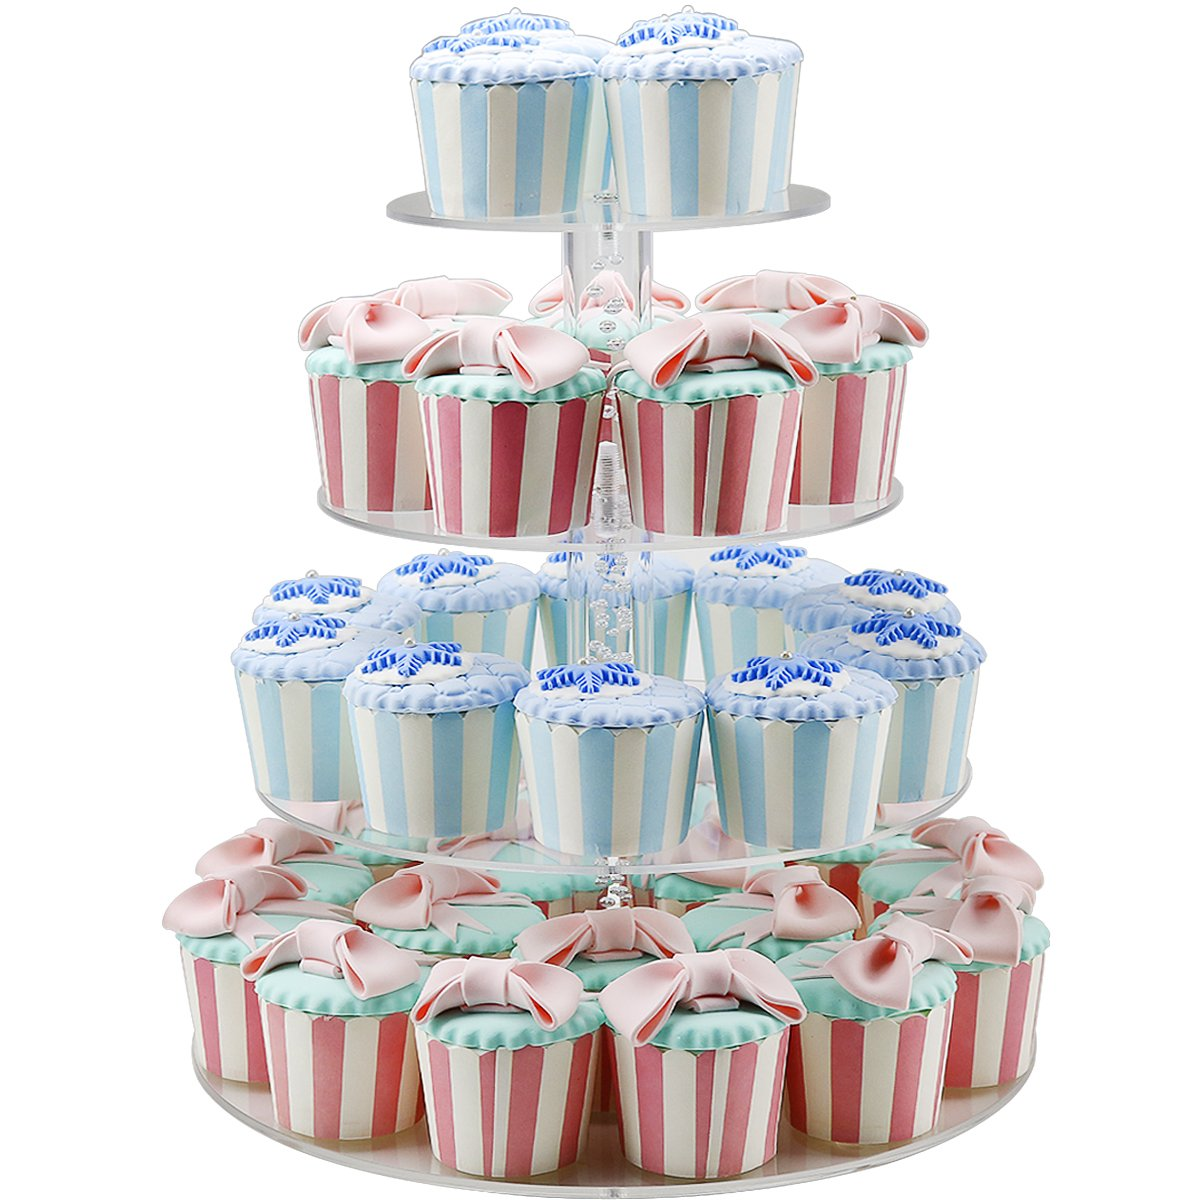 2018 New Style 4 Tiers Cupcake Stands Tower - Clear Acrylic Display Holder Tree - Tiered Cupcake Display- Tiered Round Pastry Stand Dessert Stands Wedding Cake Stands For Parties Birthday - DYCacrlic by DYCacrlic (Image #4)